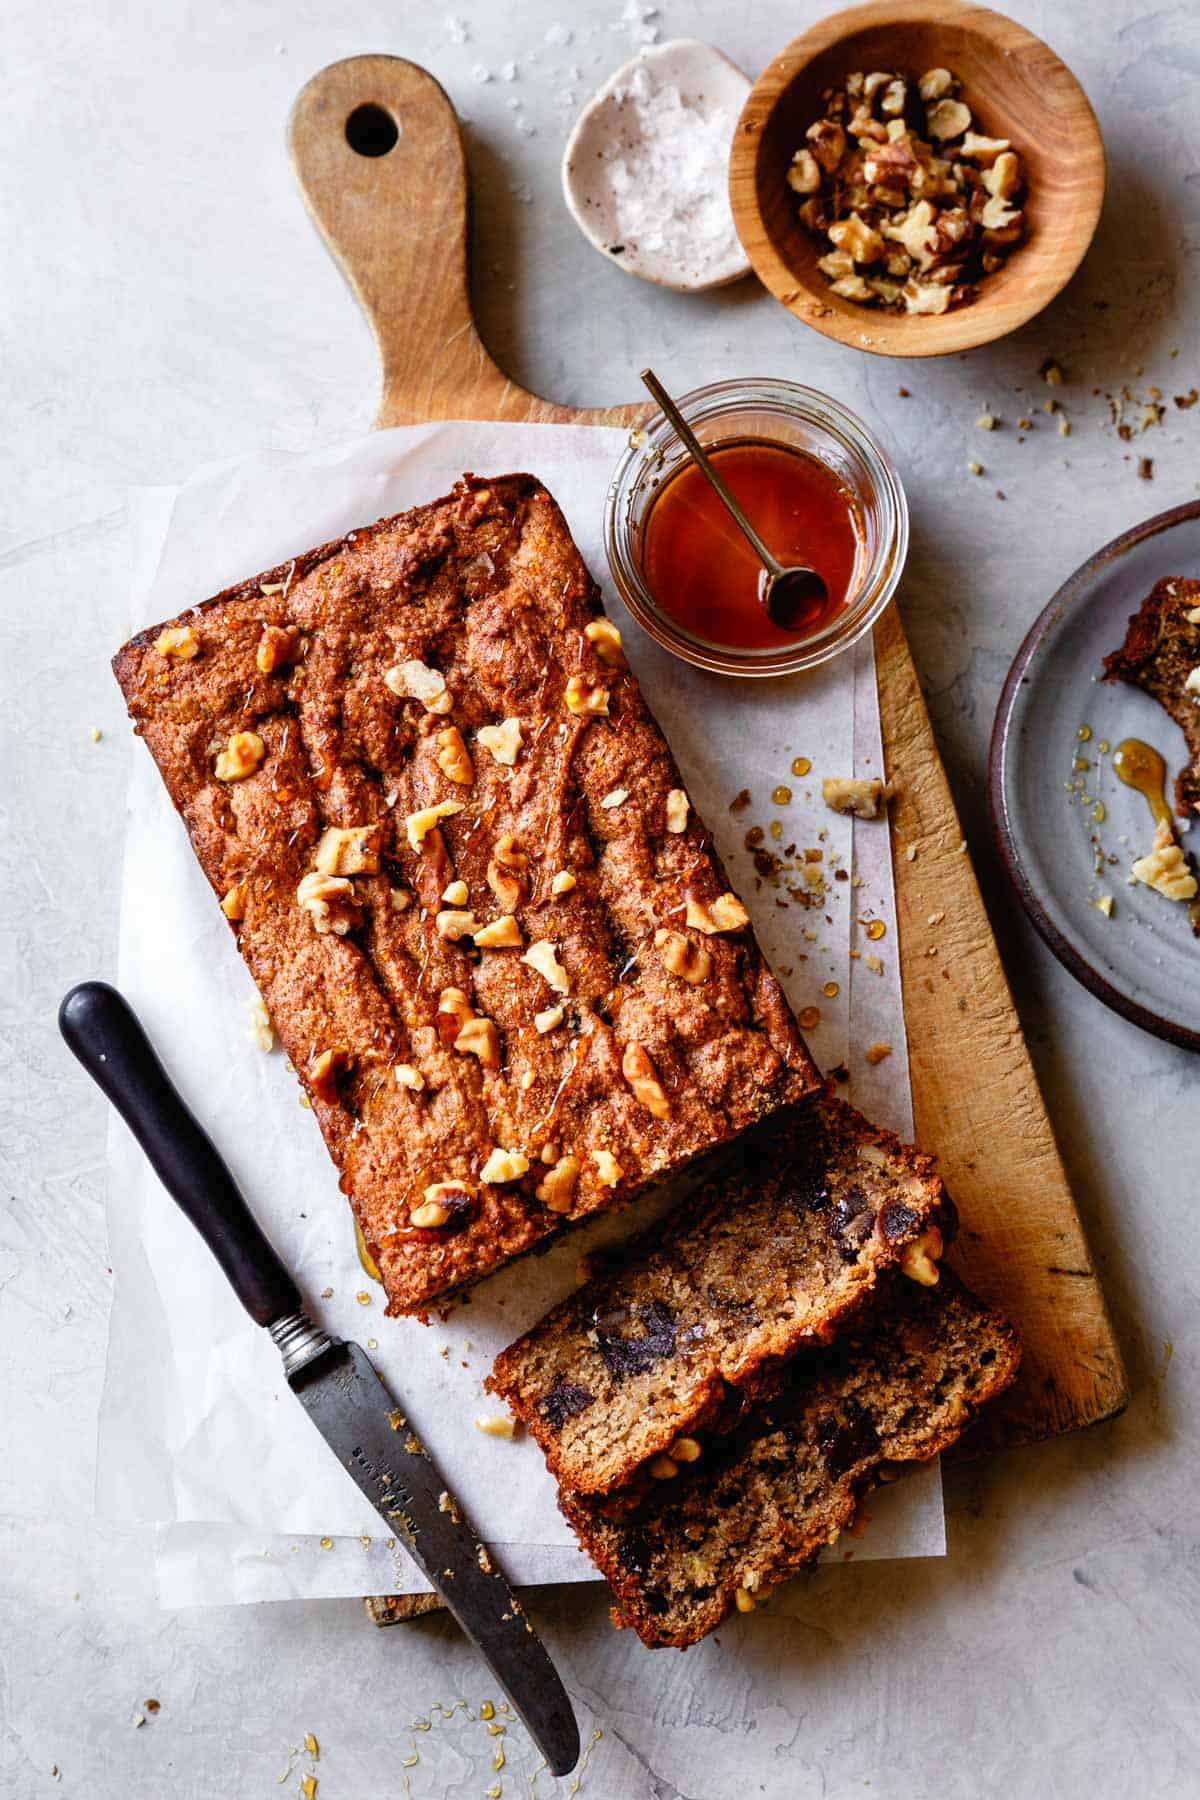 banana bread on a board with honey, nuts, and flaky salt